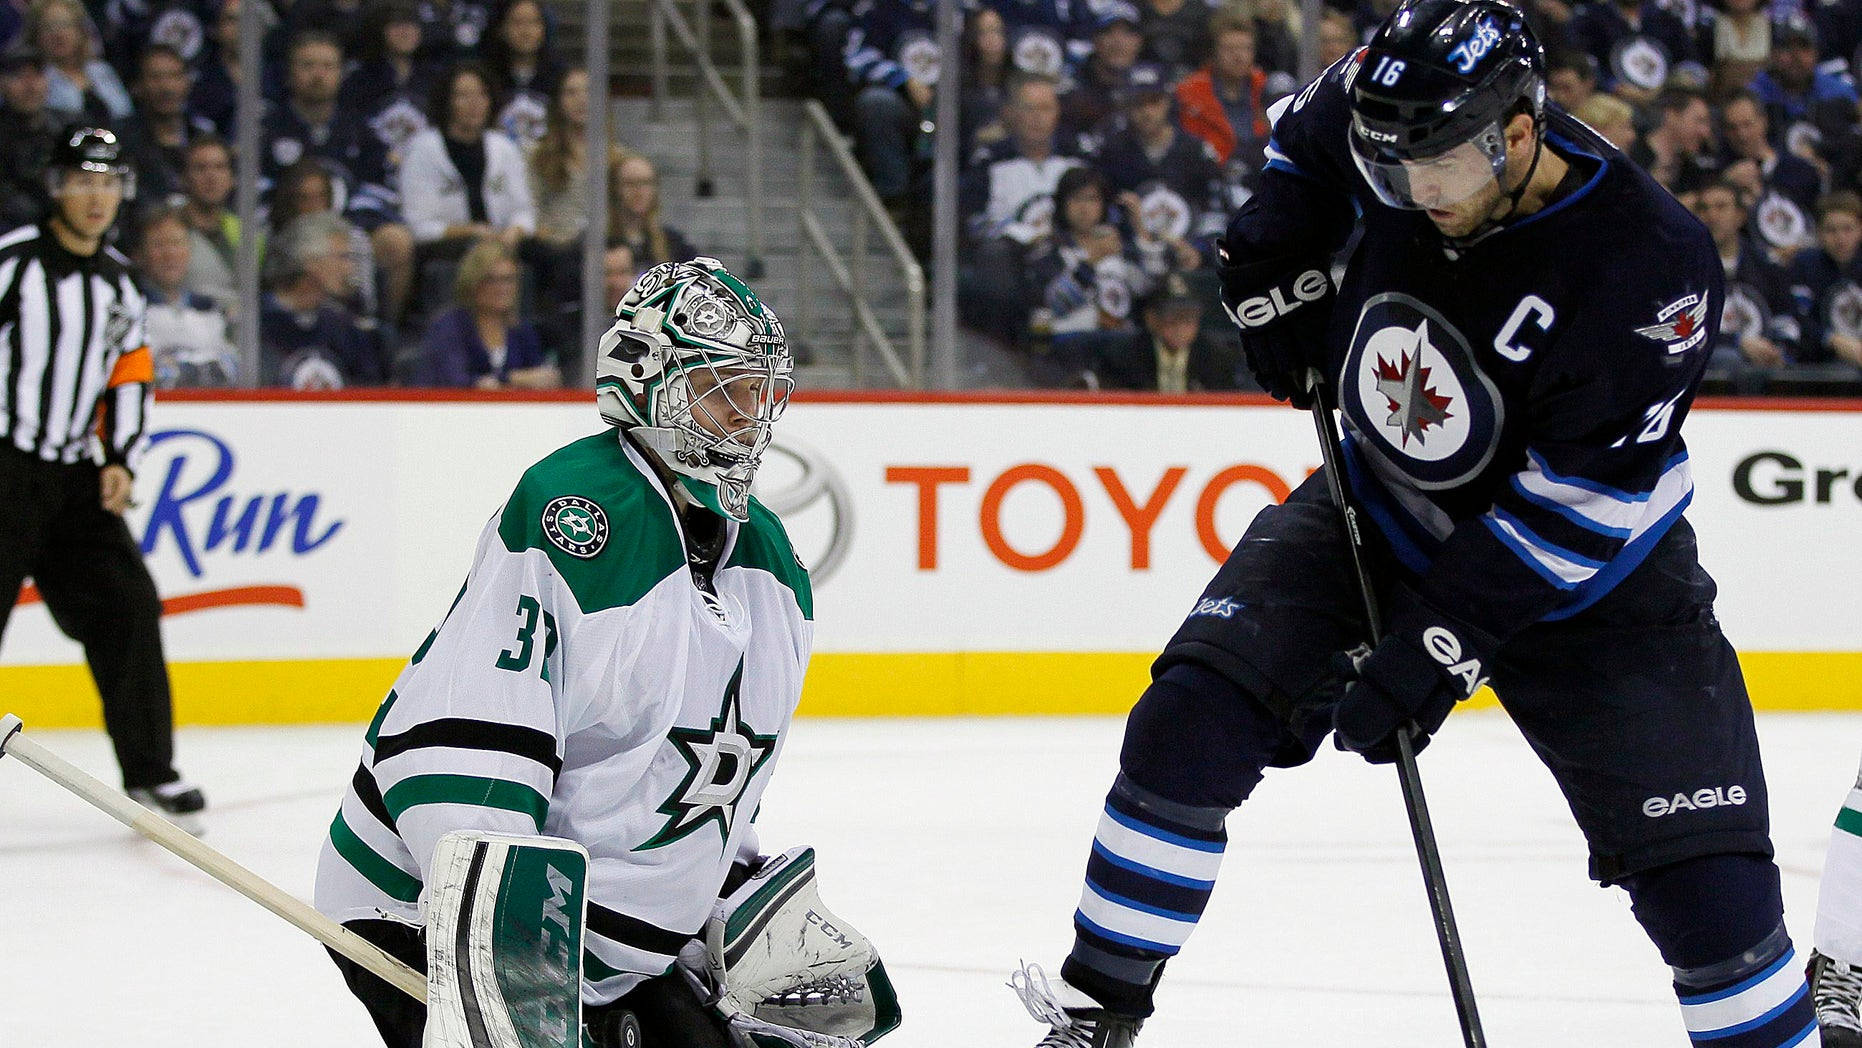 Winnipeg Jets' Andrew Ladd's (16) deflection is stopped by Dallas Stars' goaltender Kari Lehtonen (32) during second-period NHL hockey game action in Winnipeg, Manitoba, Friday, Oct. 11, 2013. (AP Photo/The Canadian Press, John Woods)